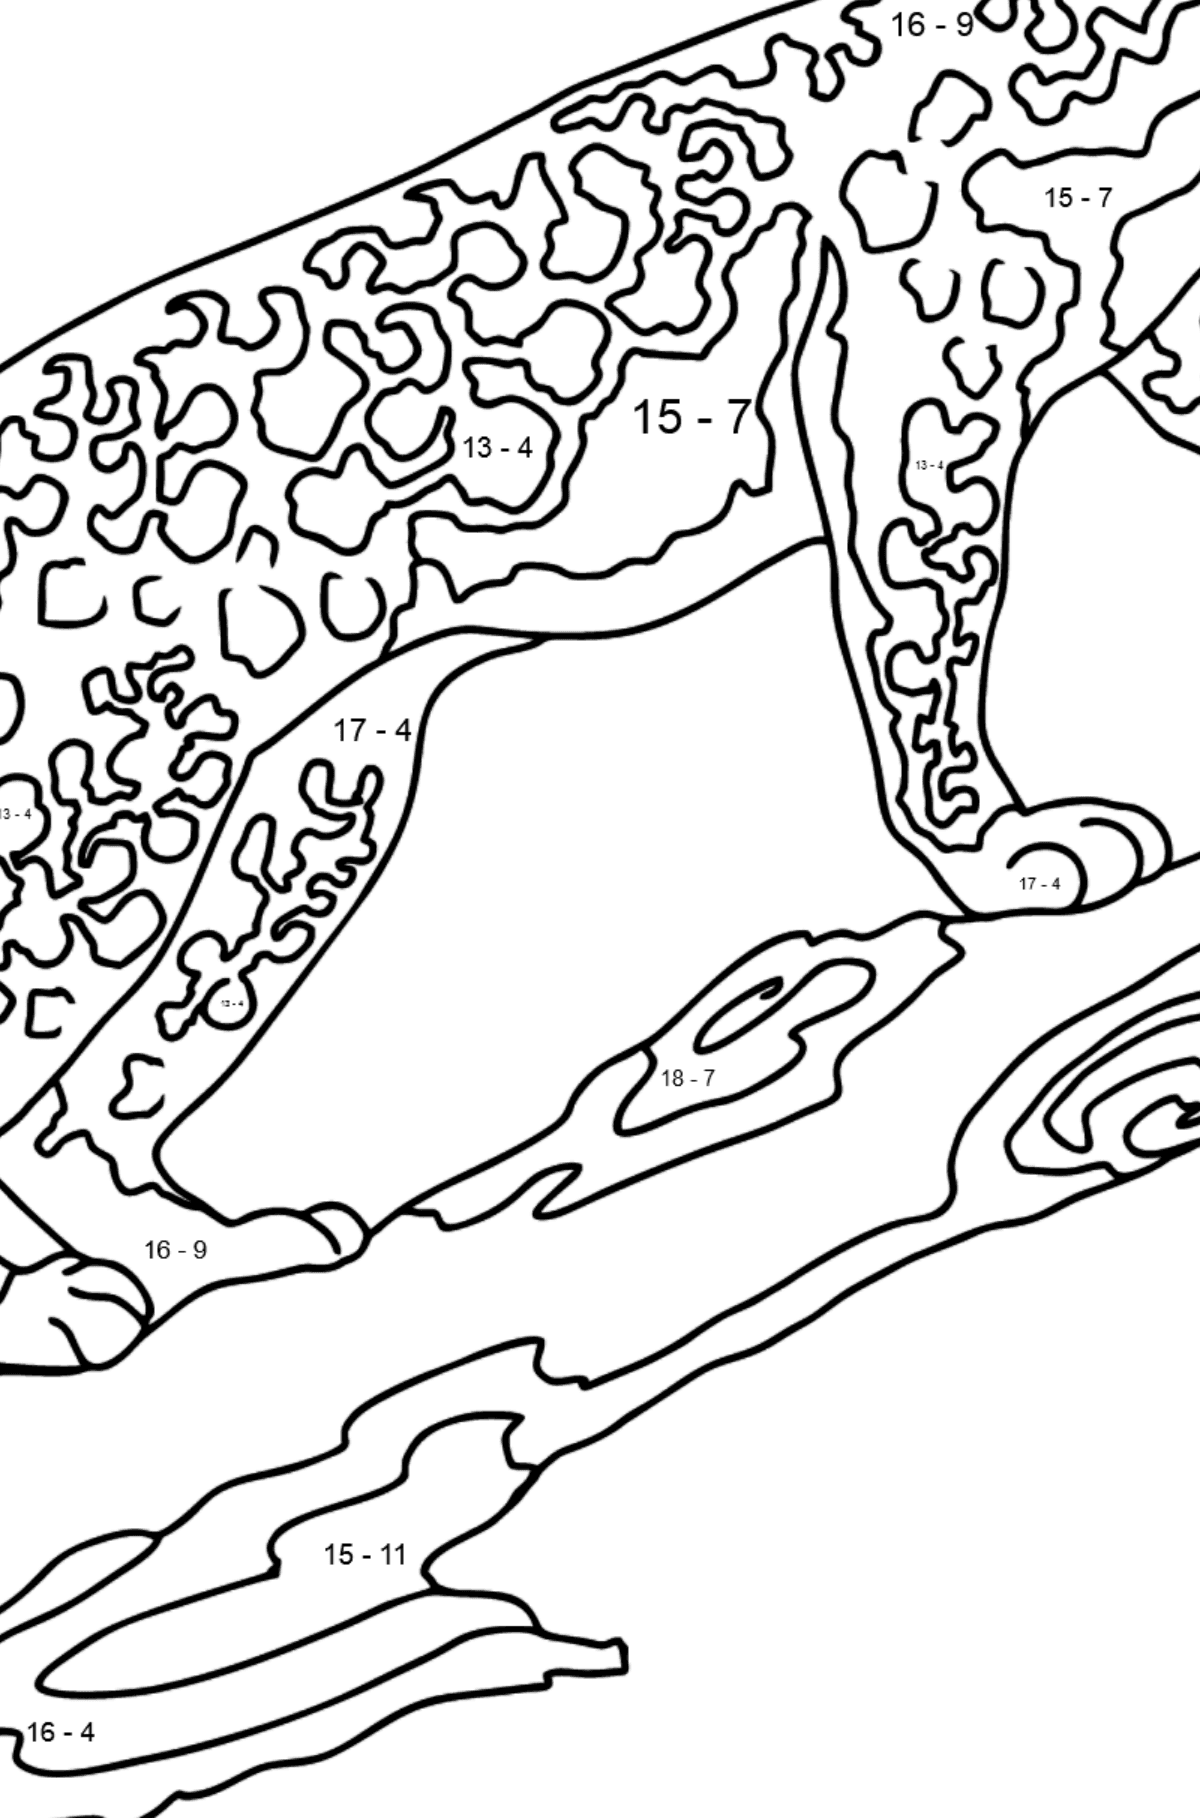 Coloring Page - A Leopard on a Branch - Math Coloring - Subtraction for Kids